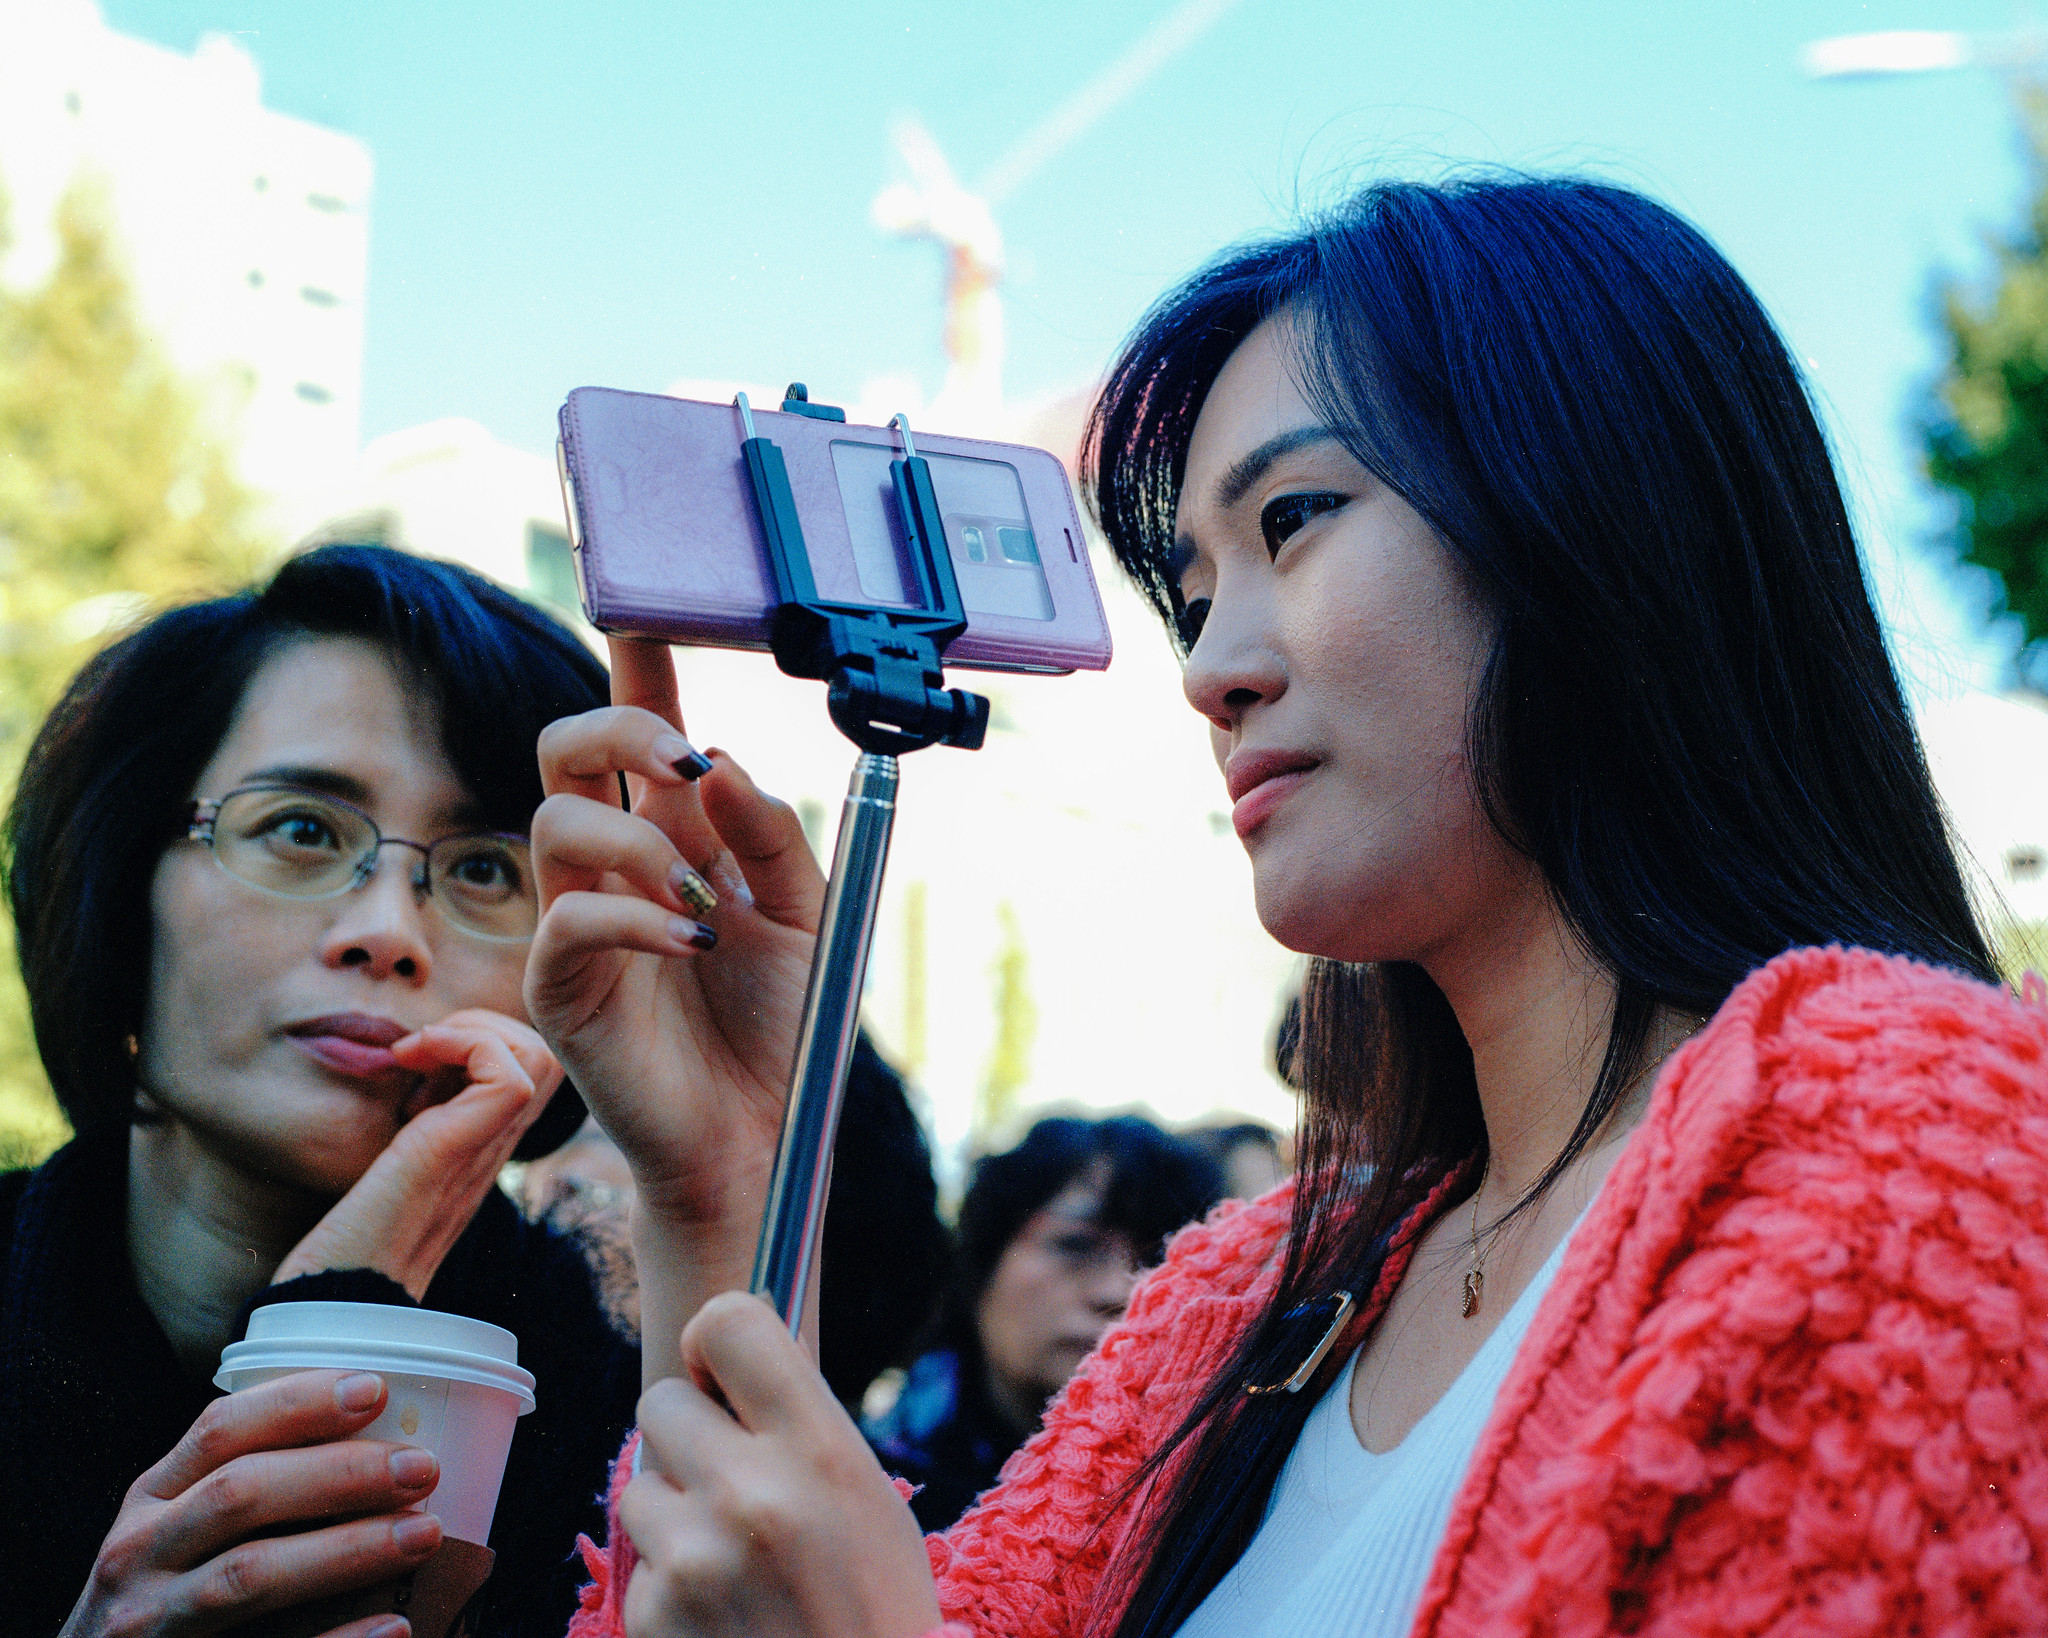 Places Where Selfies Are Banned - Noselfies 9 places where selfies are banned